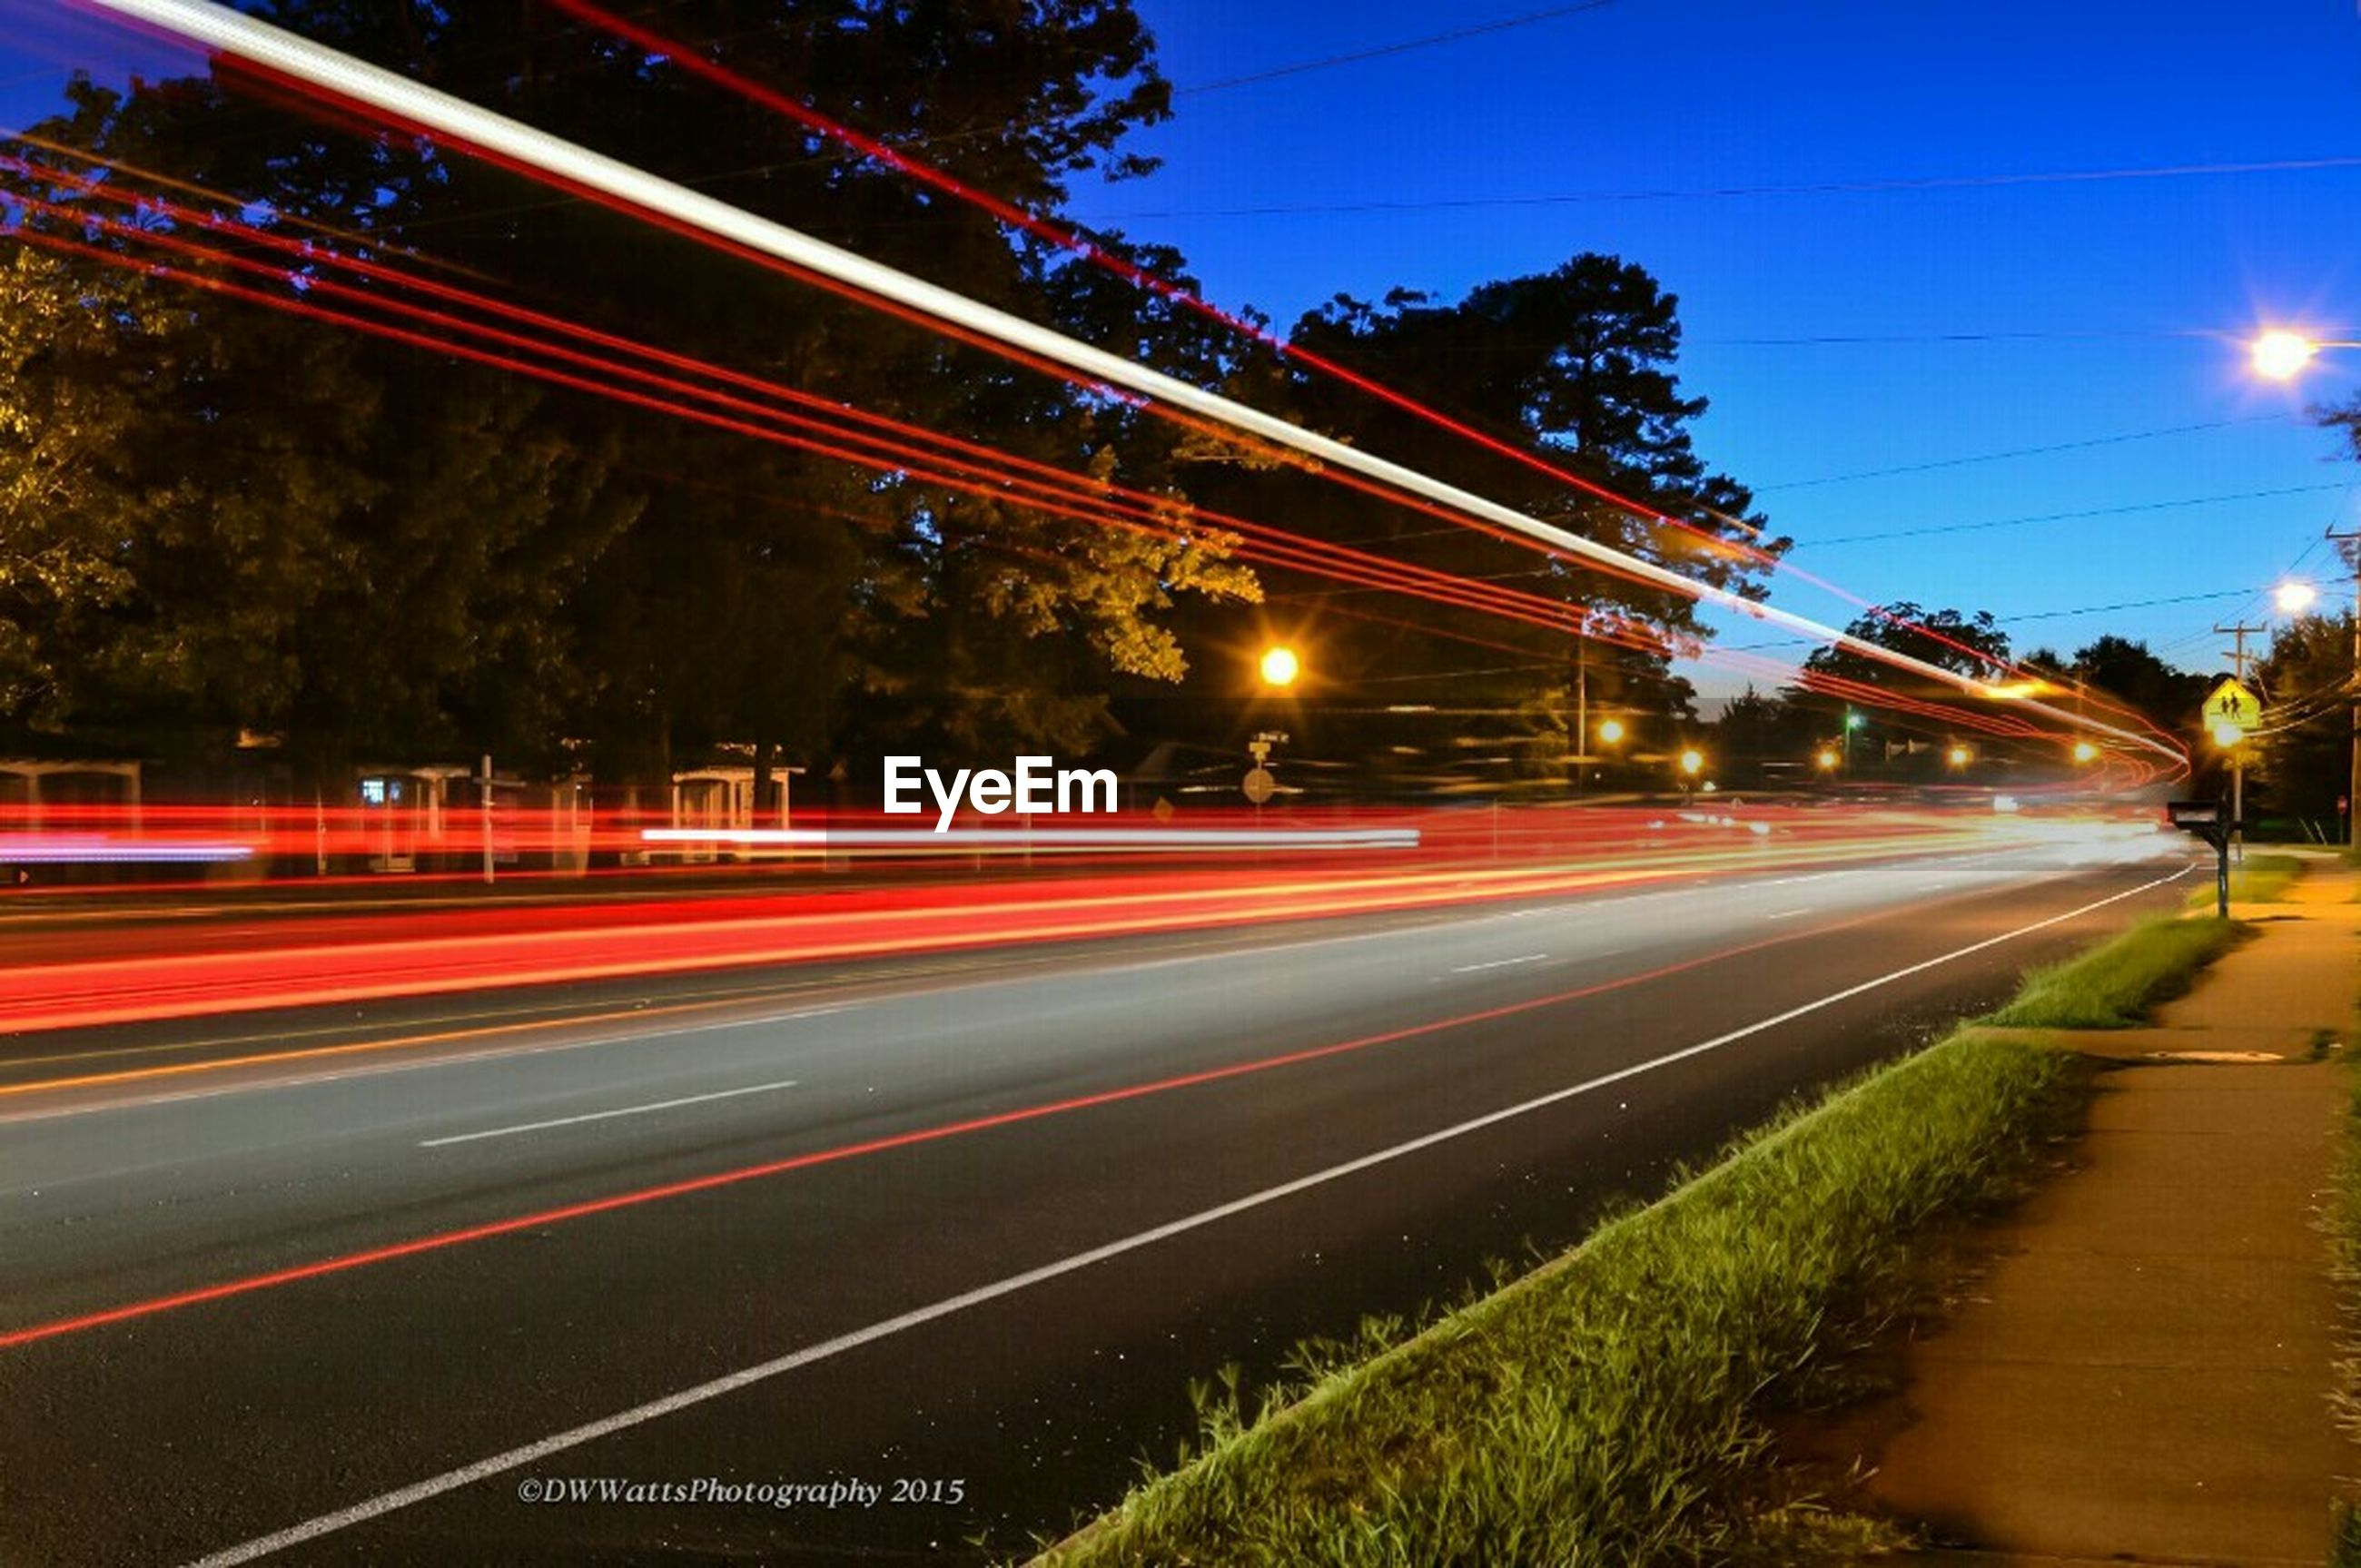 illuminated, light trail, long exposure, night, speed, motion, transportation, blurred motion, road, traffic, street, city, street light, sky, building exterior, on the move, city life, tail light, highway, architecture